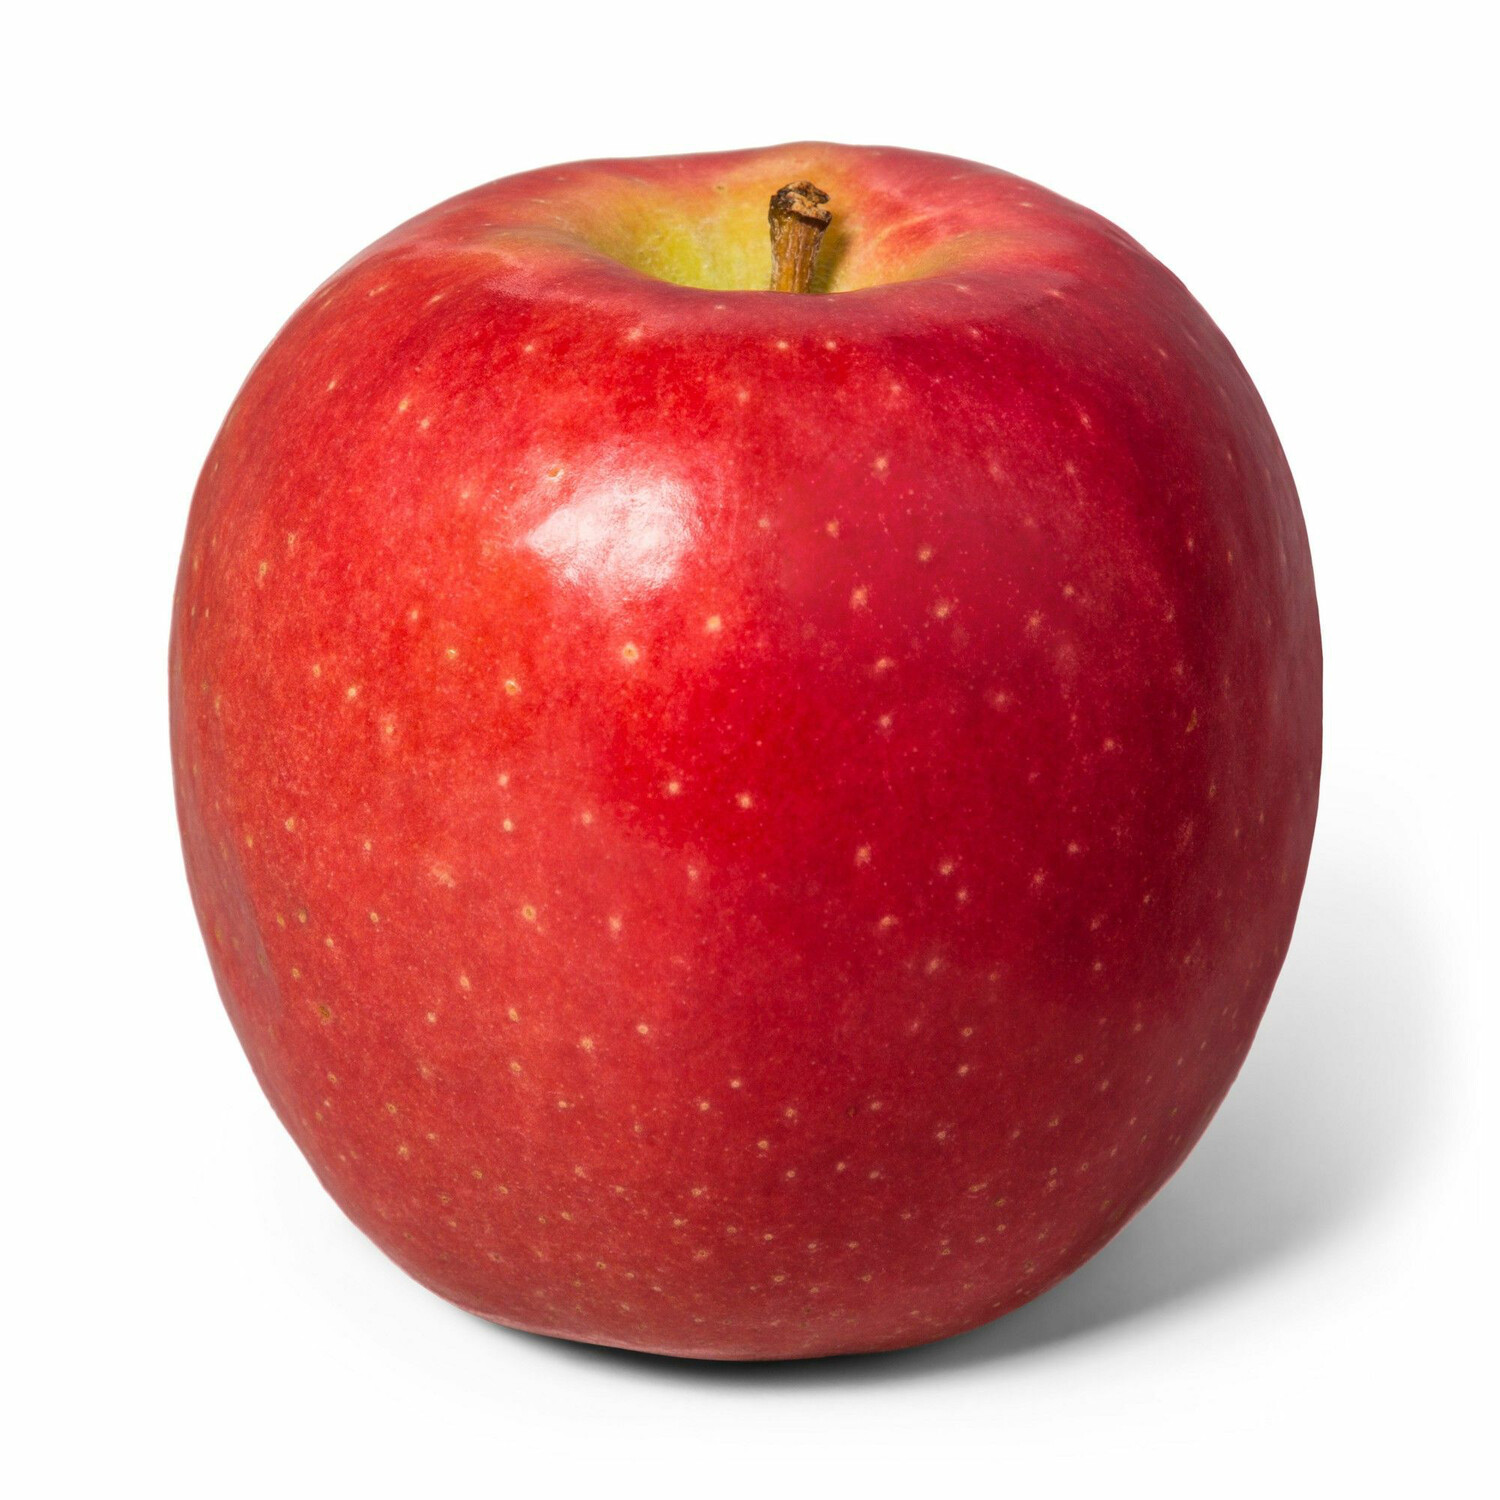 APPLES BAG SMALL PINK LADY (APPX 11- 14)